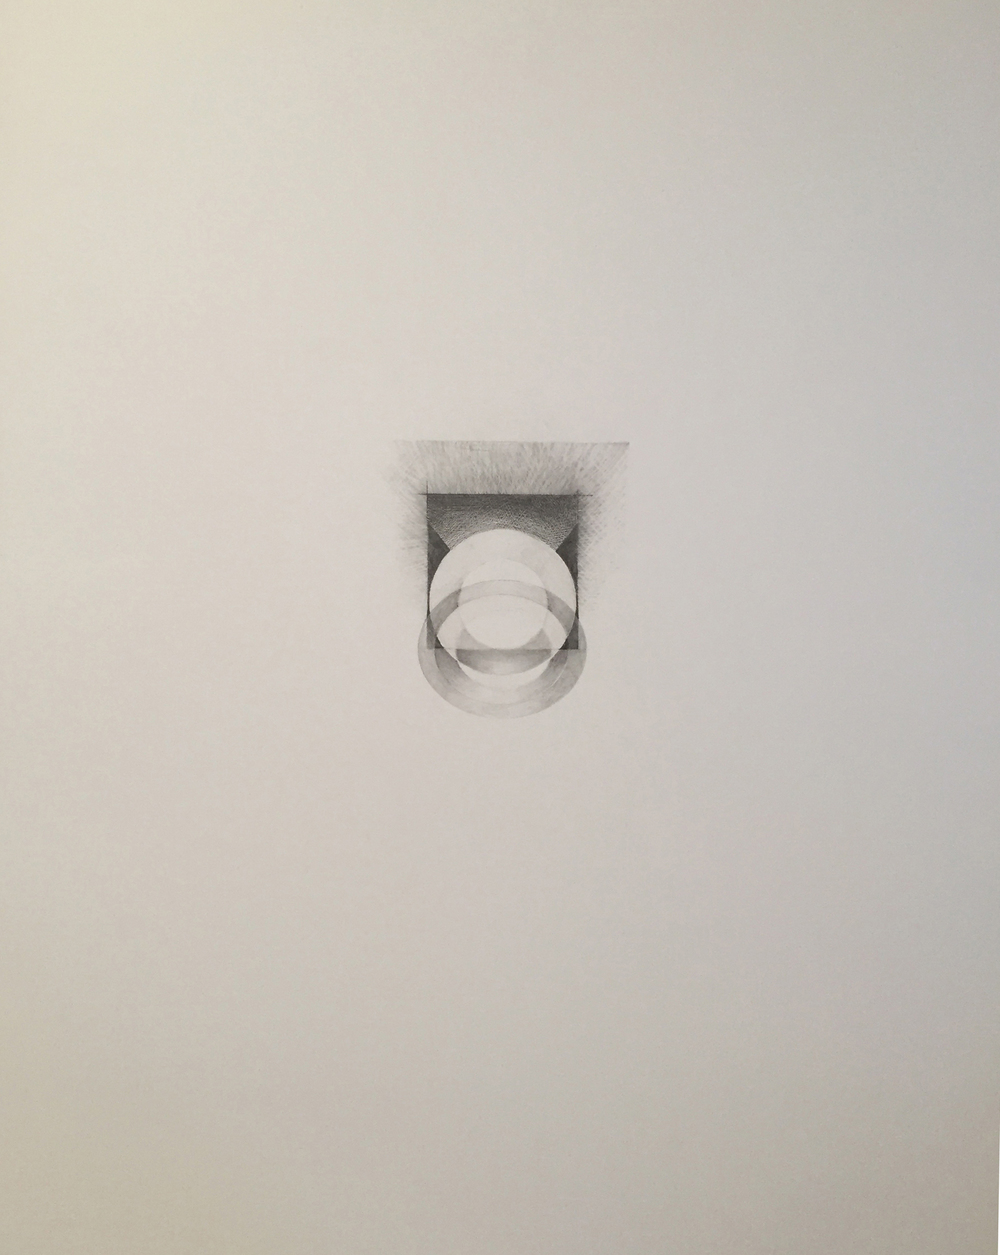 Ghidini, Grace 9, 2015, graphite and mica dust on paper, 28 1/2 x 22 1/2 inches